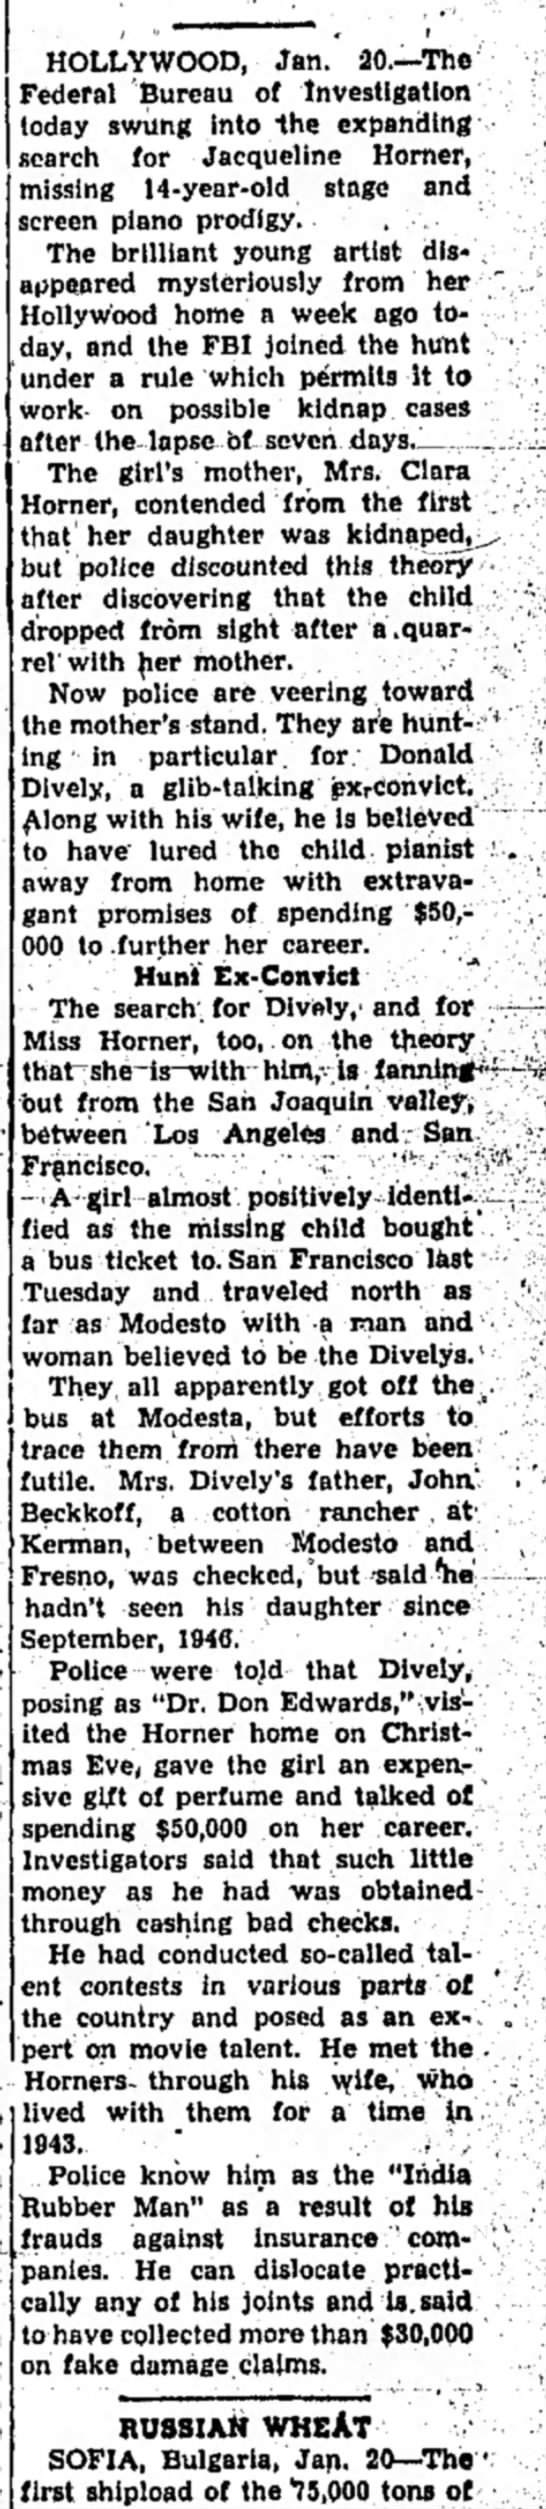 Donald R Dively CA in trouble again 1948 -